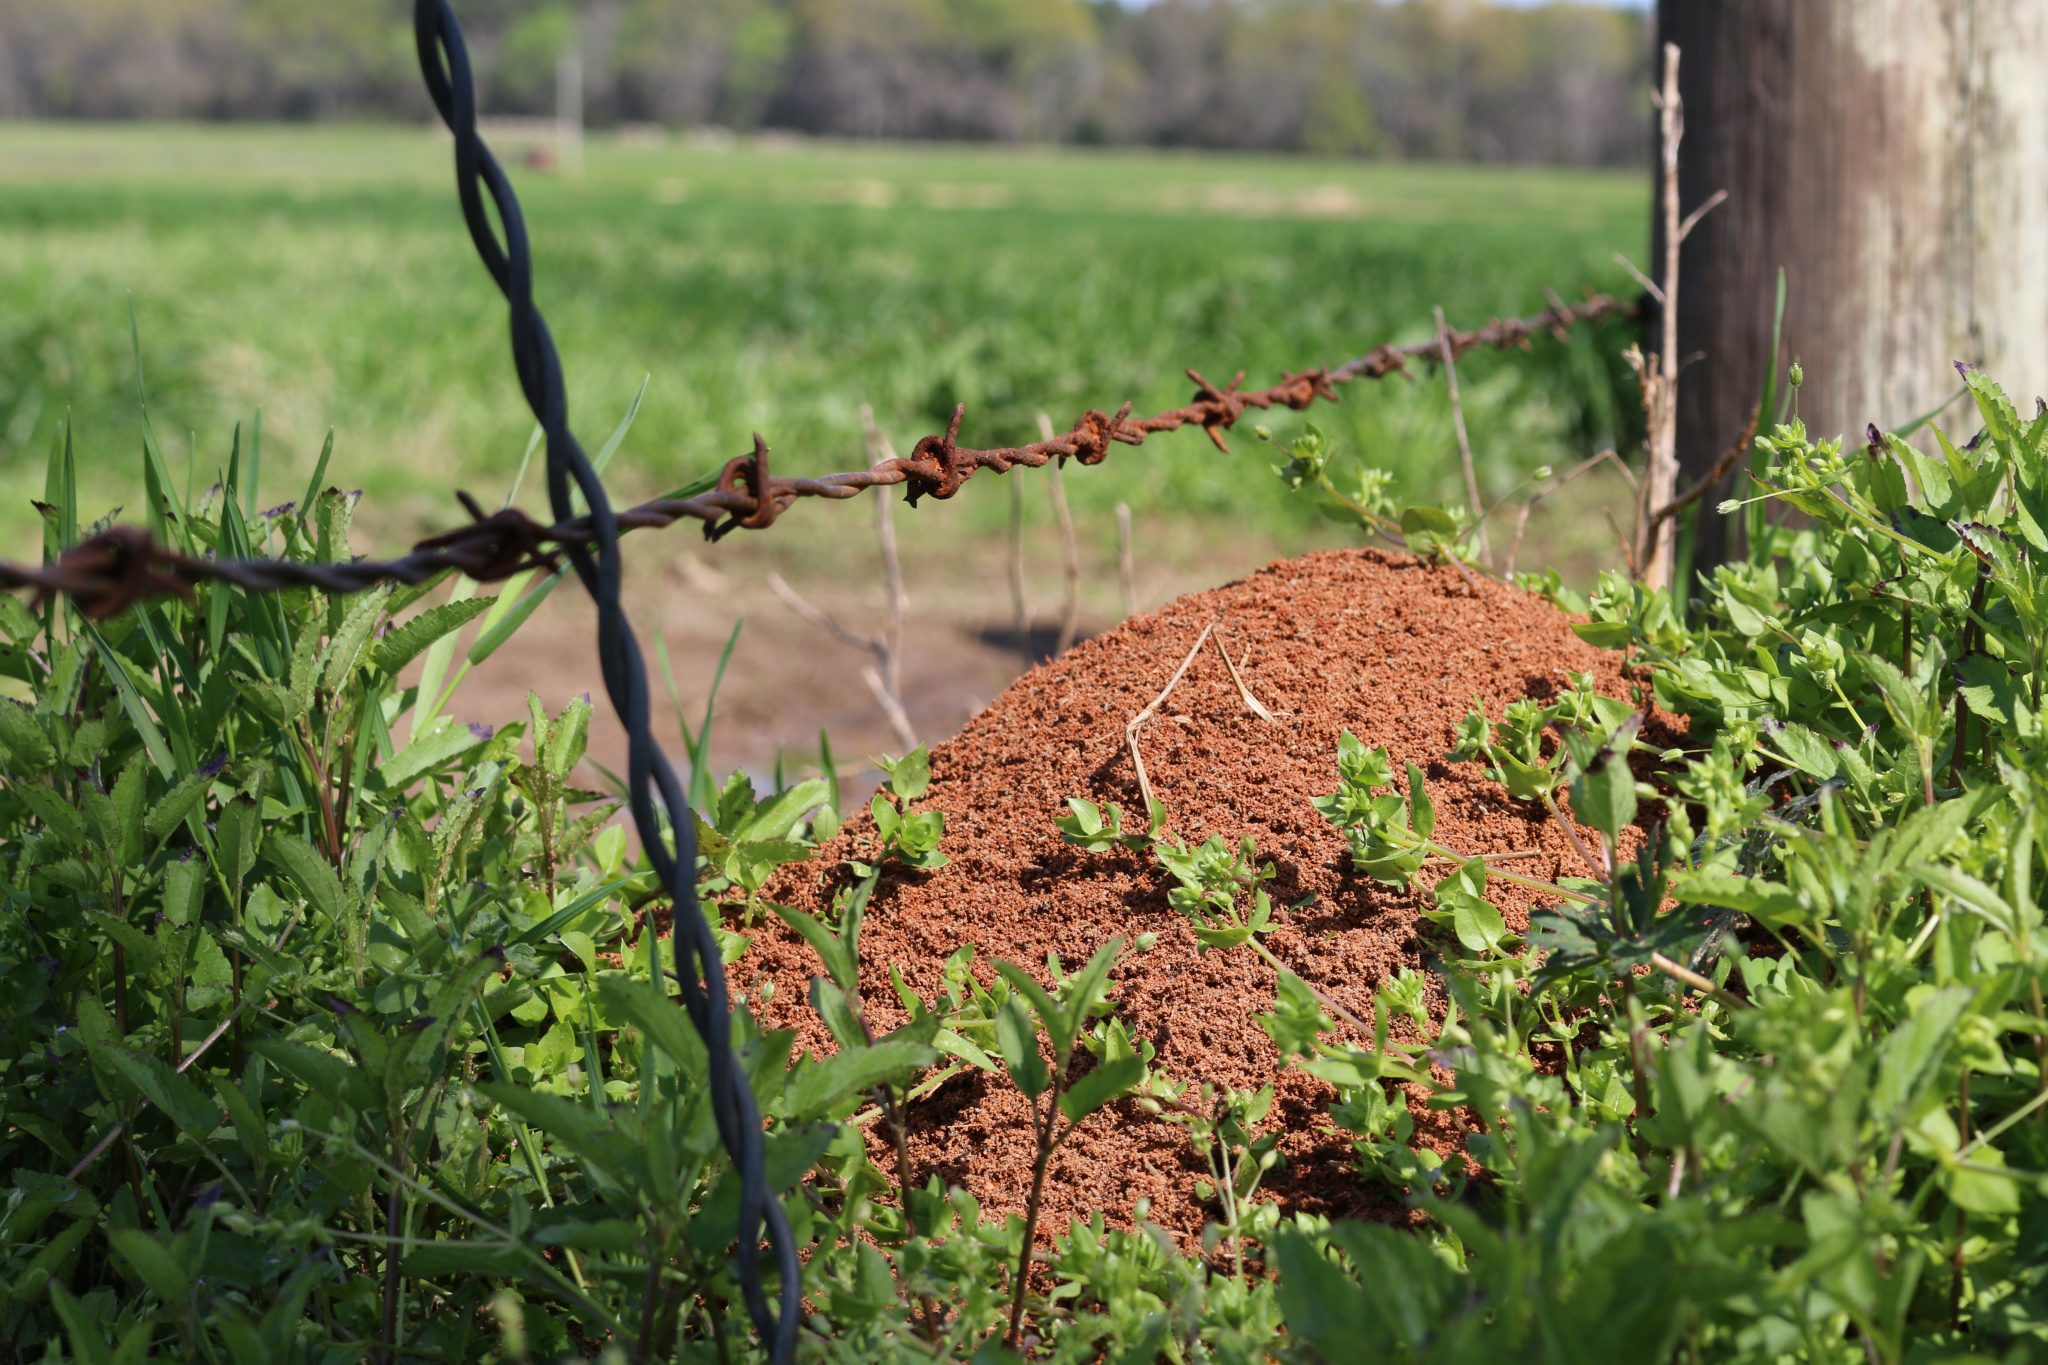 Fire ant mound along a fence.